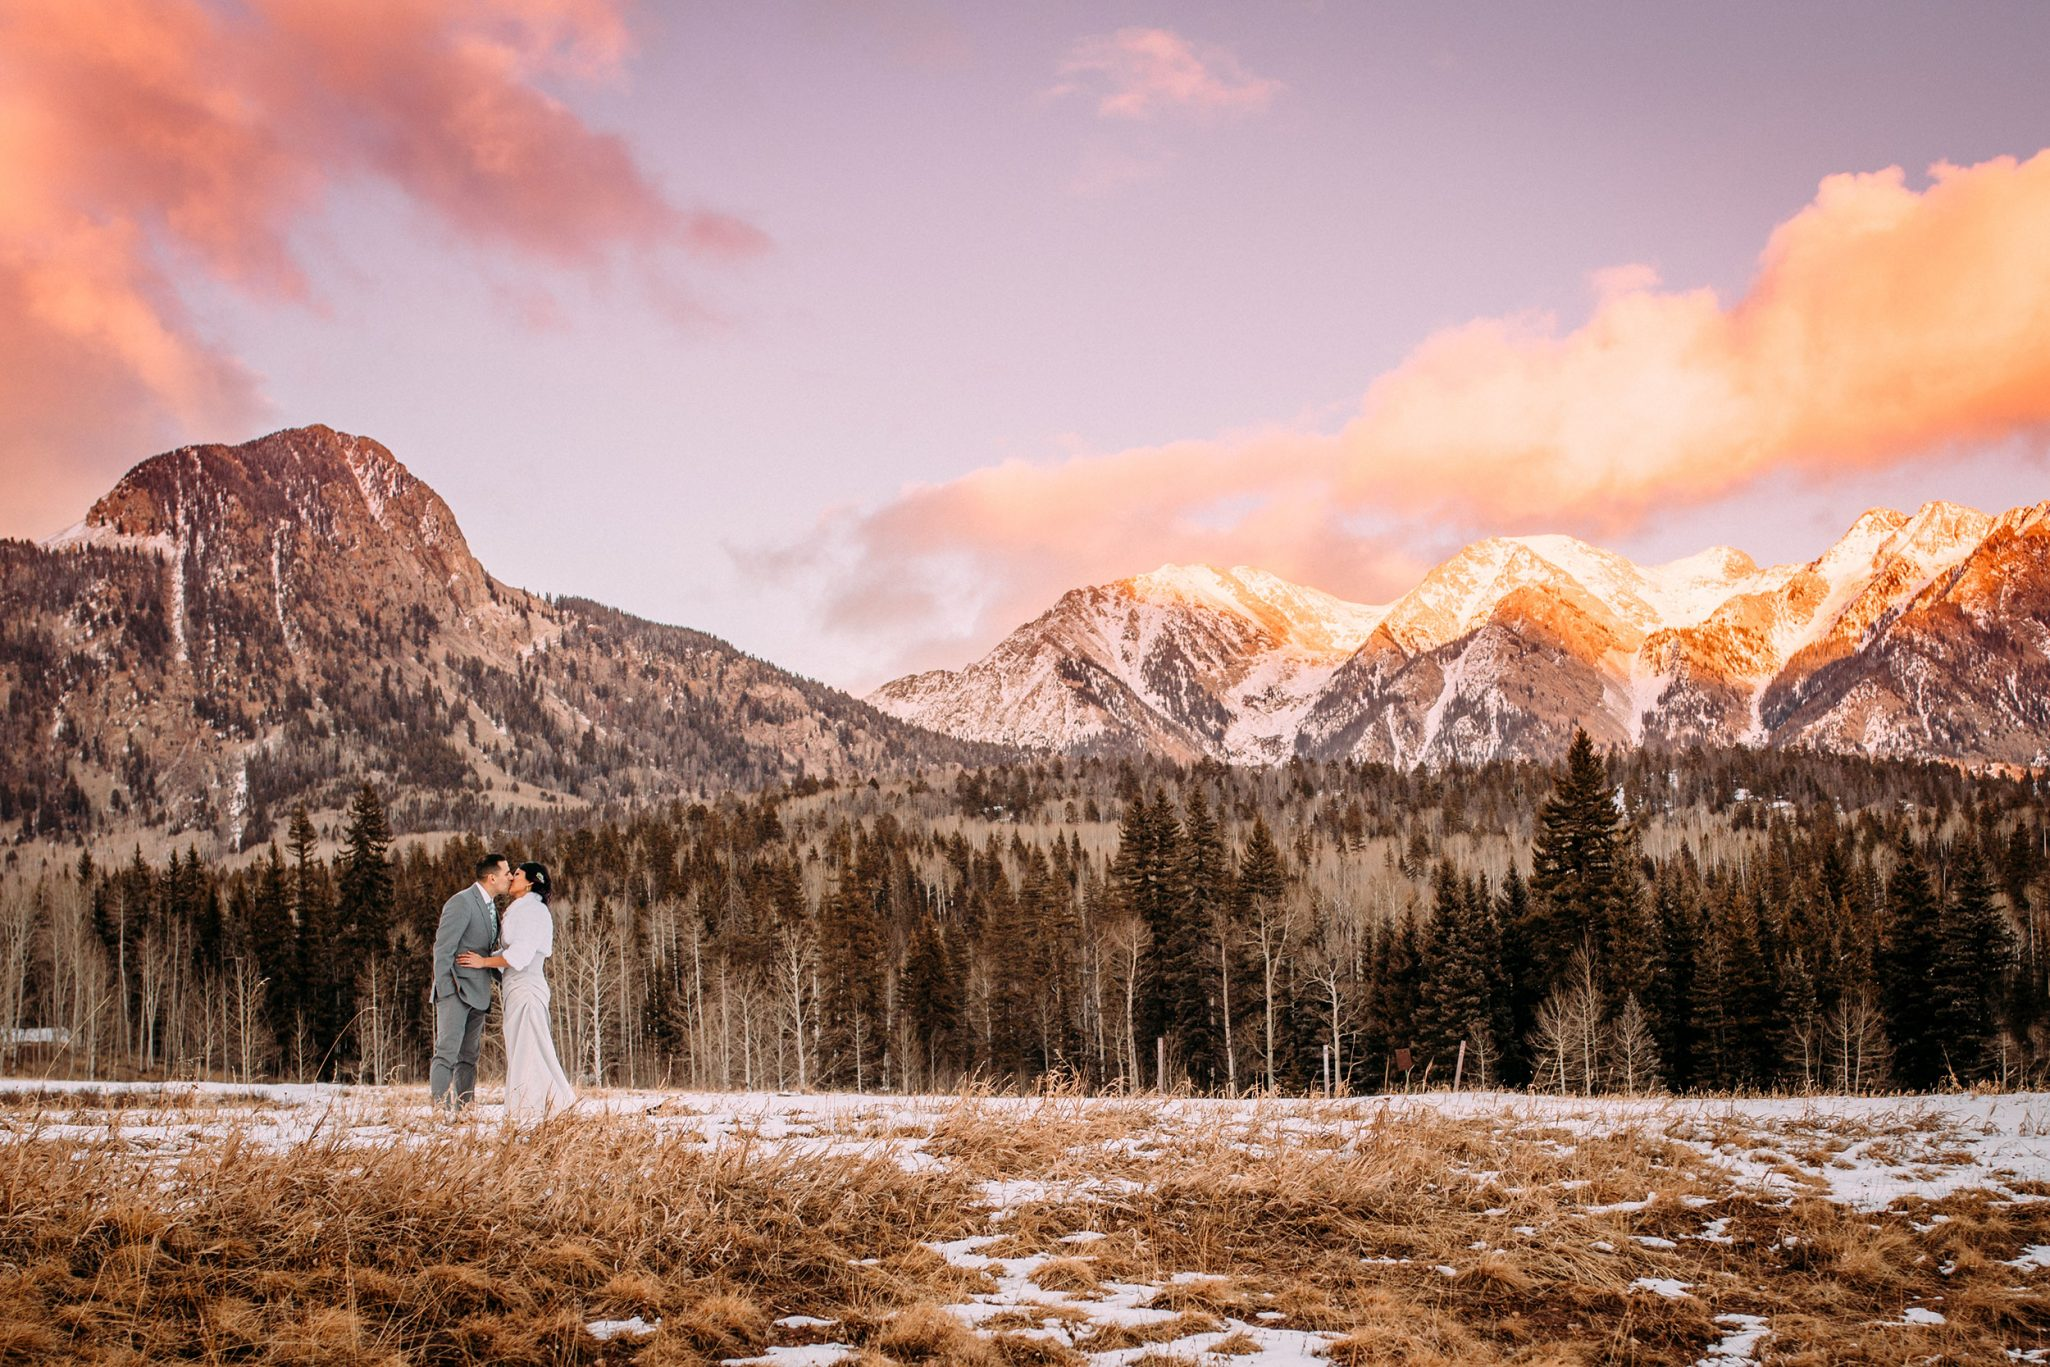 A Winter Wedding in the Snow at Silverpick Lodge, Durango Colorado